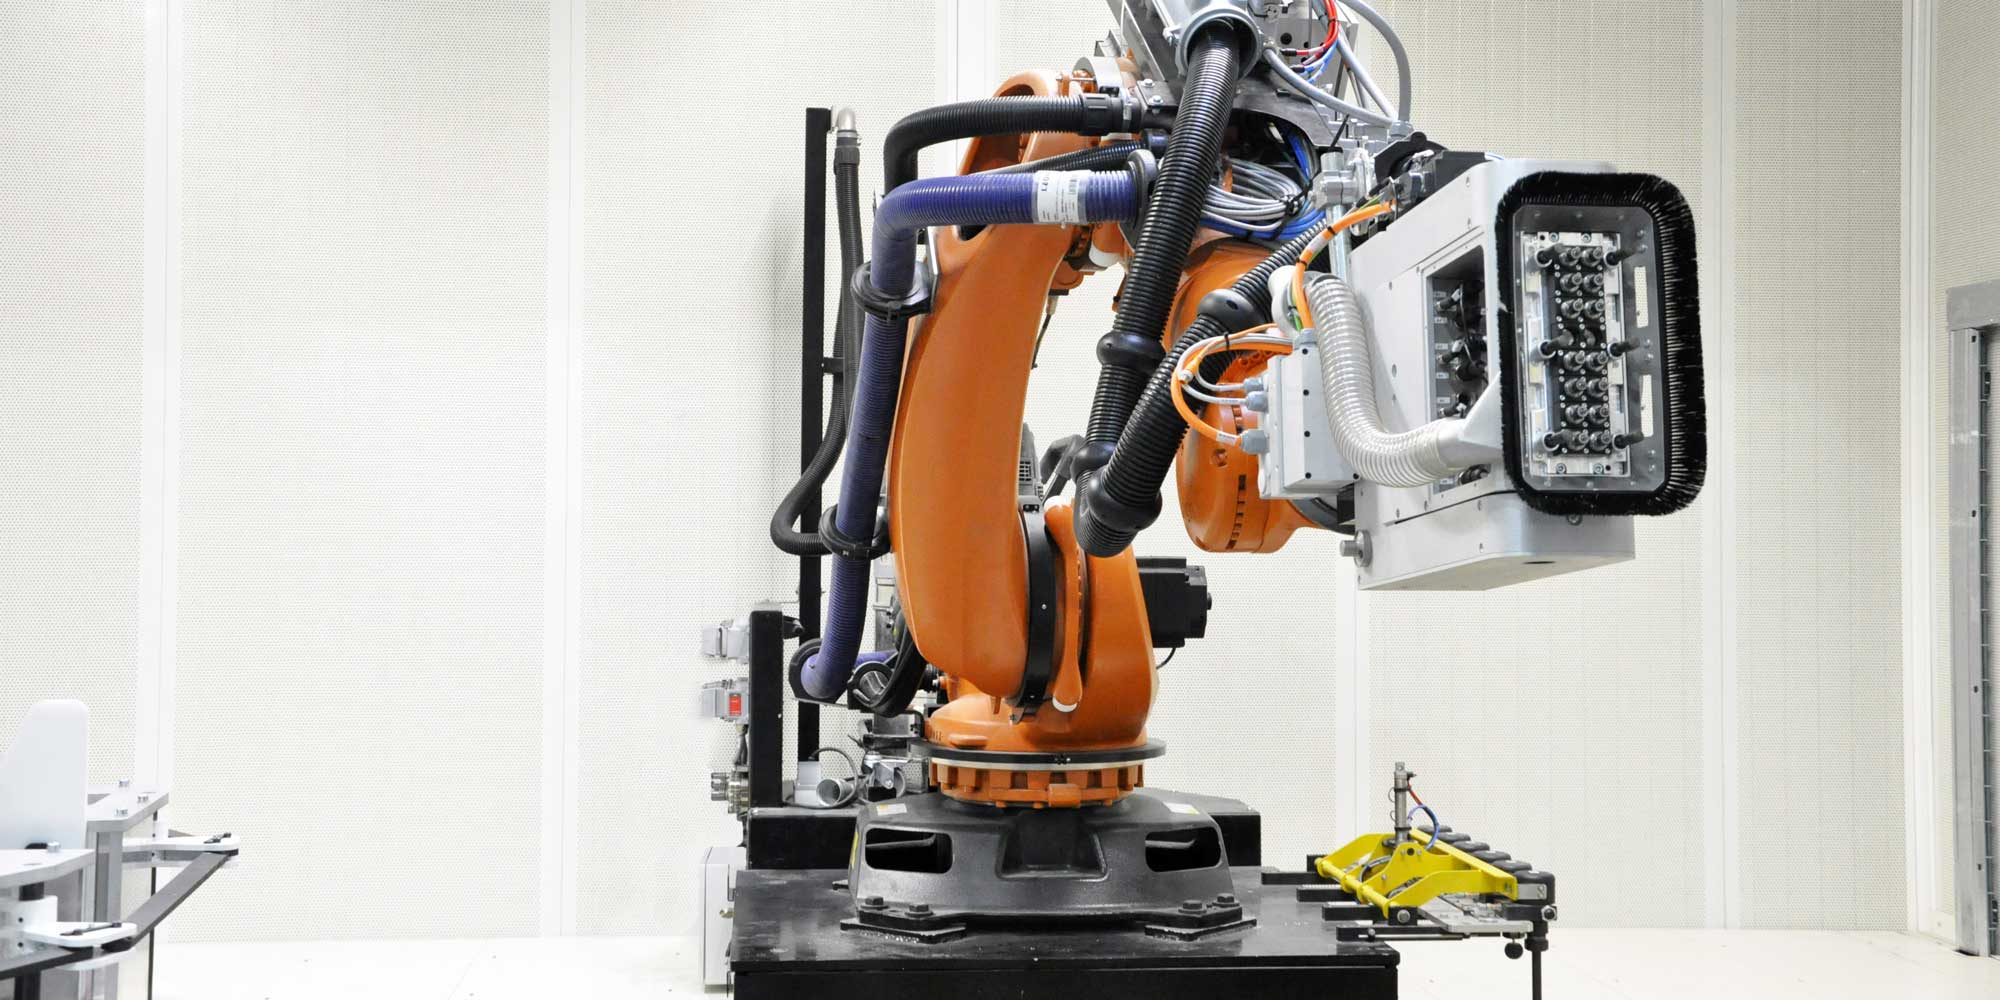 Robotic drilling - accoustic drilling of composite panels - GEBE2